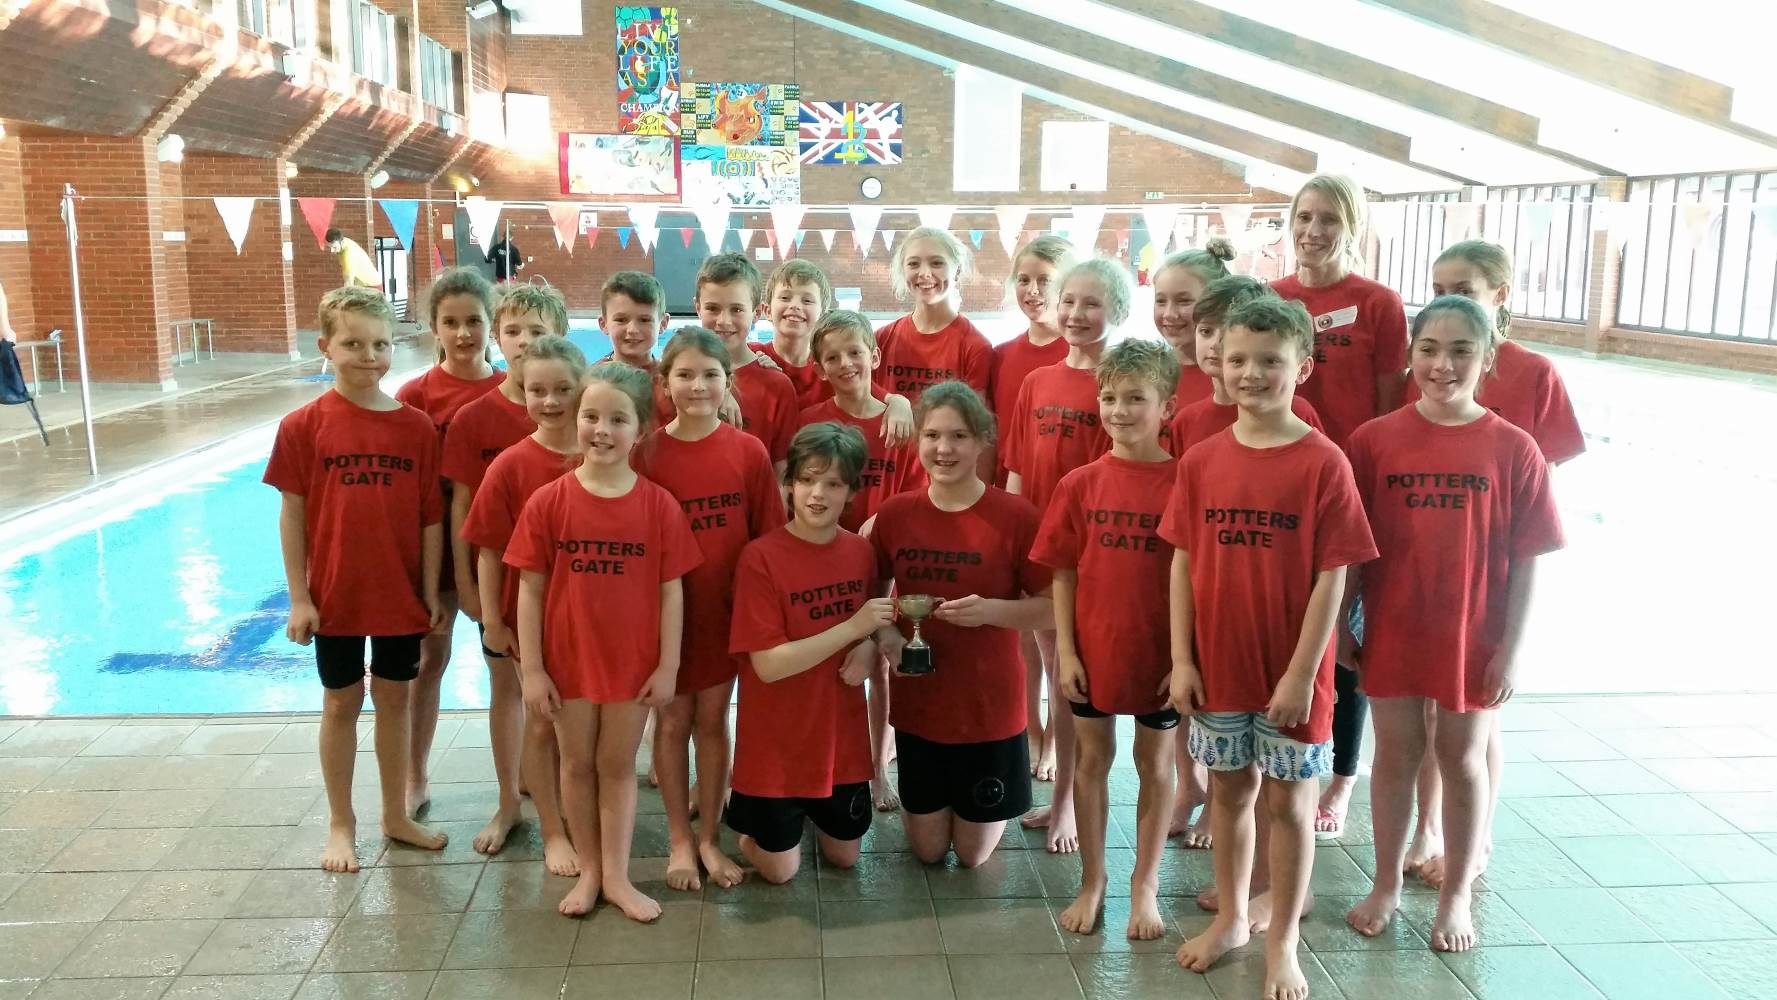 Swimming gala team